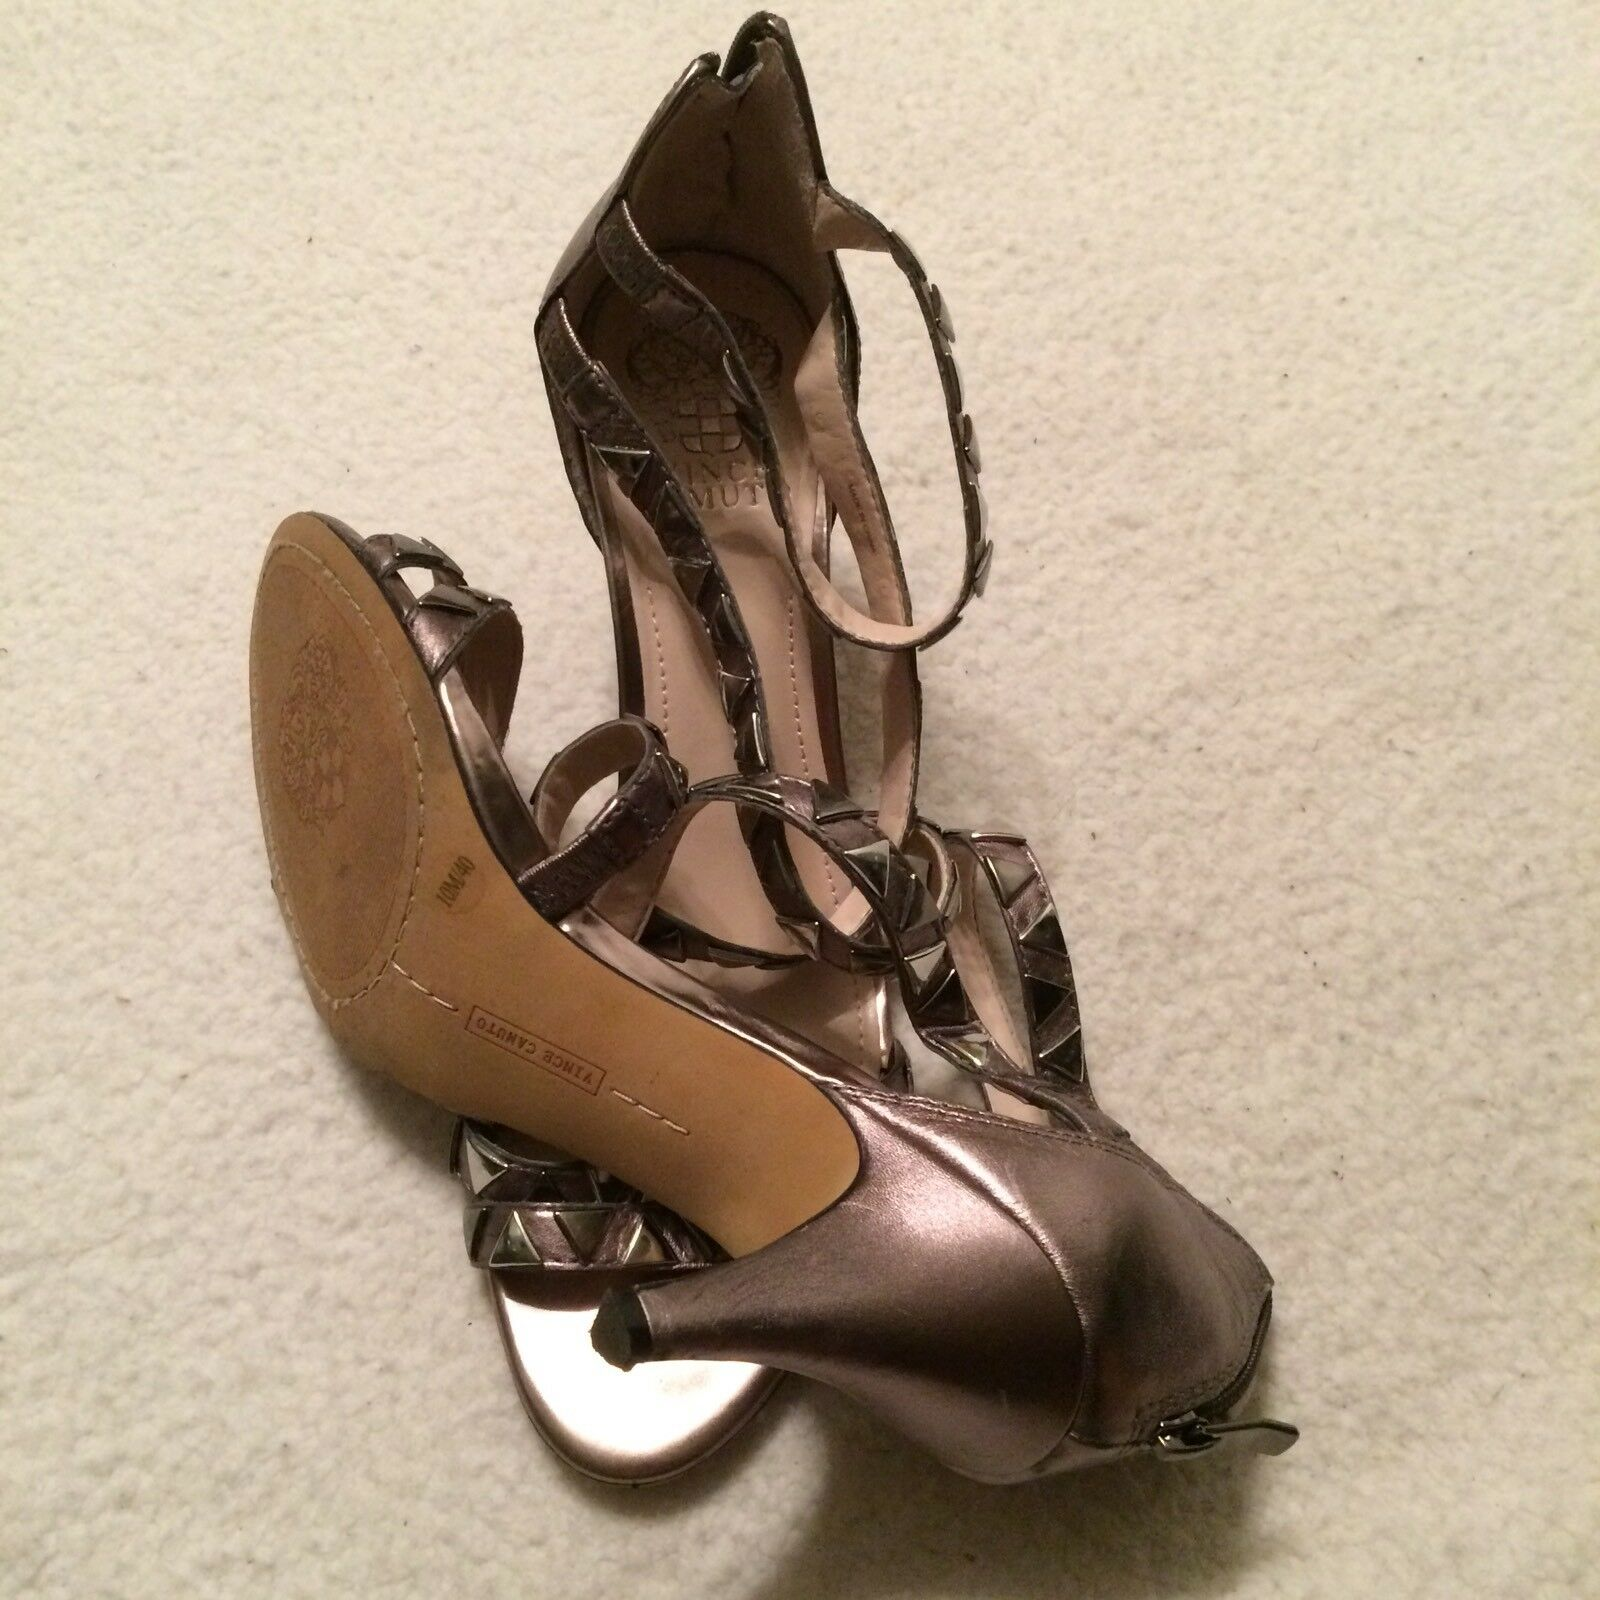 Vince Camuto VC Mikal Leather Leather Leather Strappy Stud Heels damen 10 M STEEL METALLIC NICE dda721